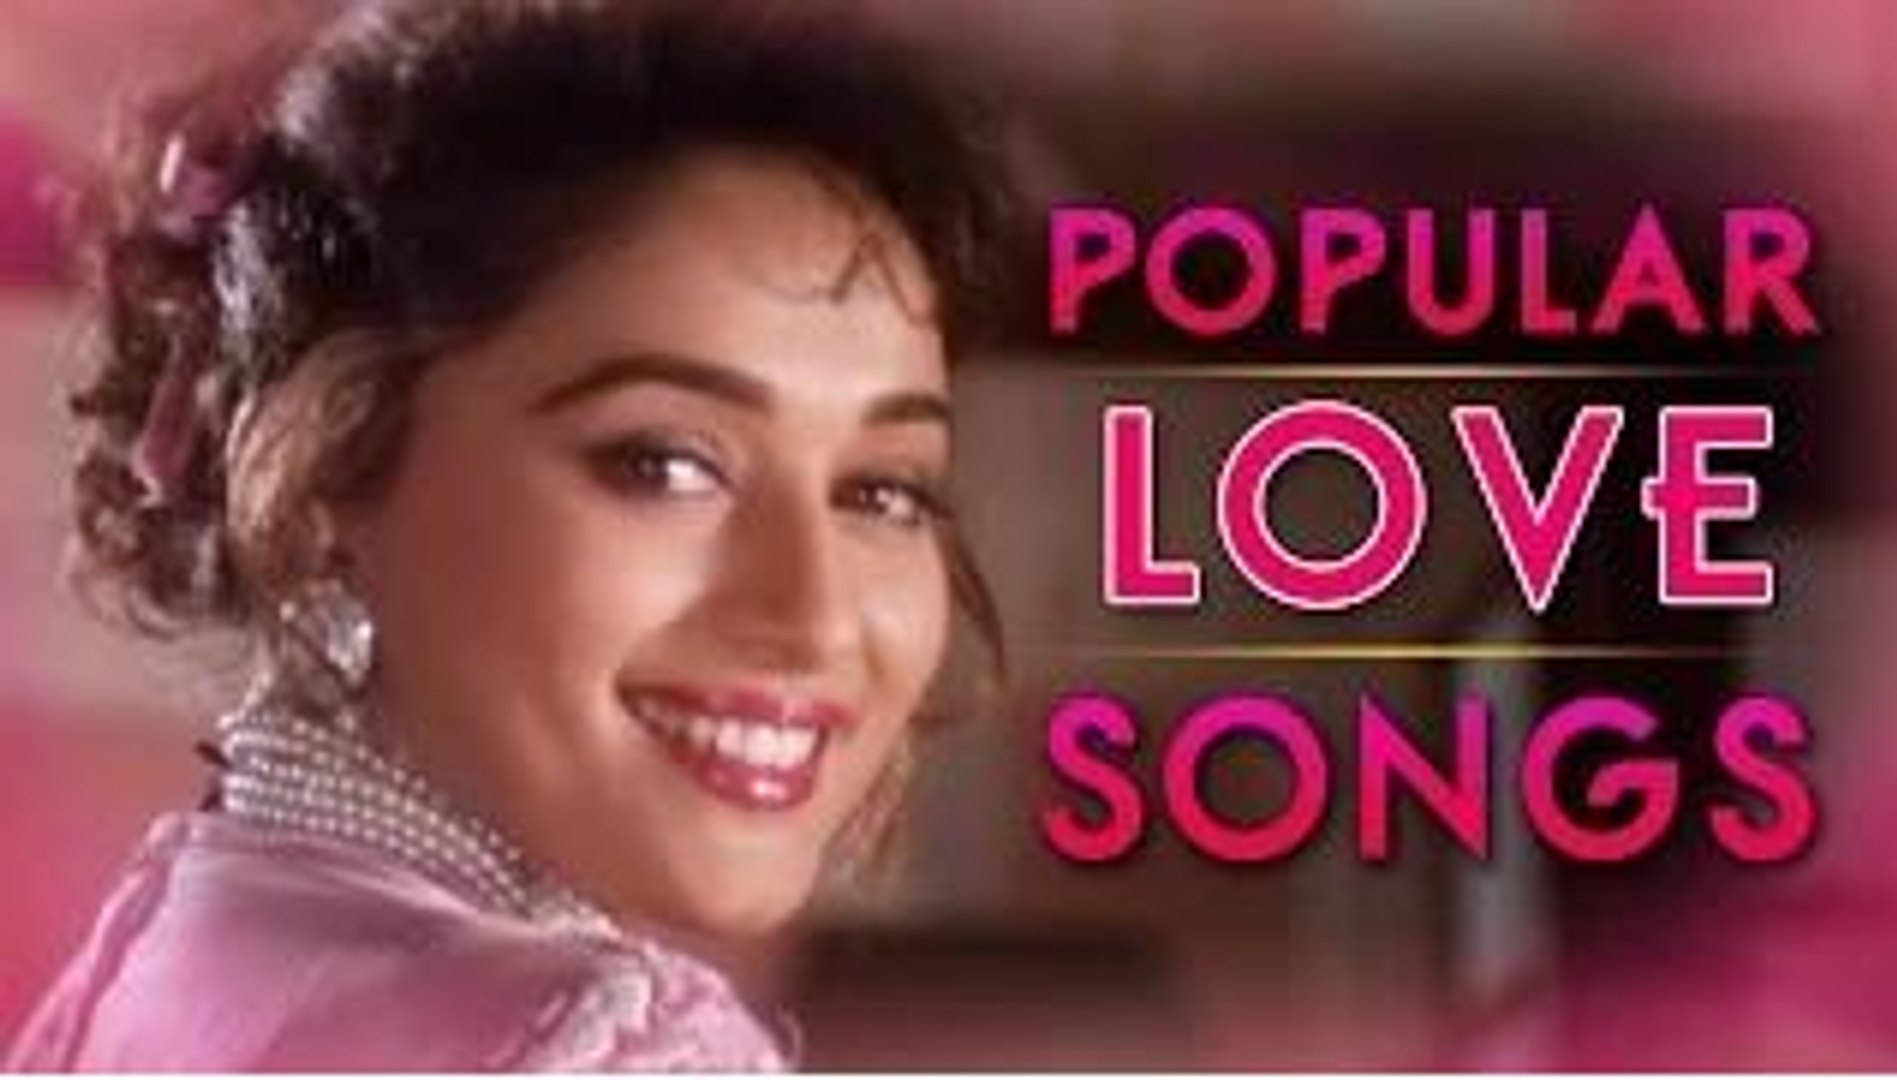 Romantic Love Songs Jukebox Pehla Pehla Pyar And Other Popular Hindi Love Songs Video Dailymotion Aankh hai bhari bhari tumse achcha kaun hai. romantic love songs jukebox pehla pehla pyar and other popular hindi love songs